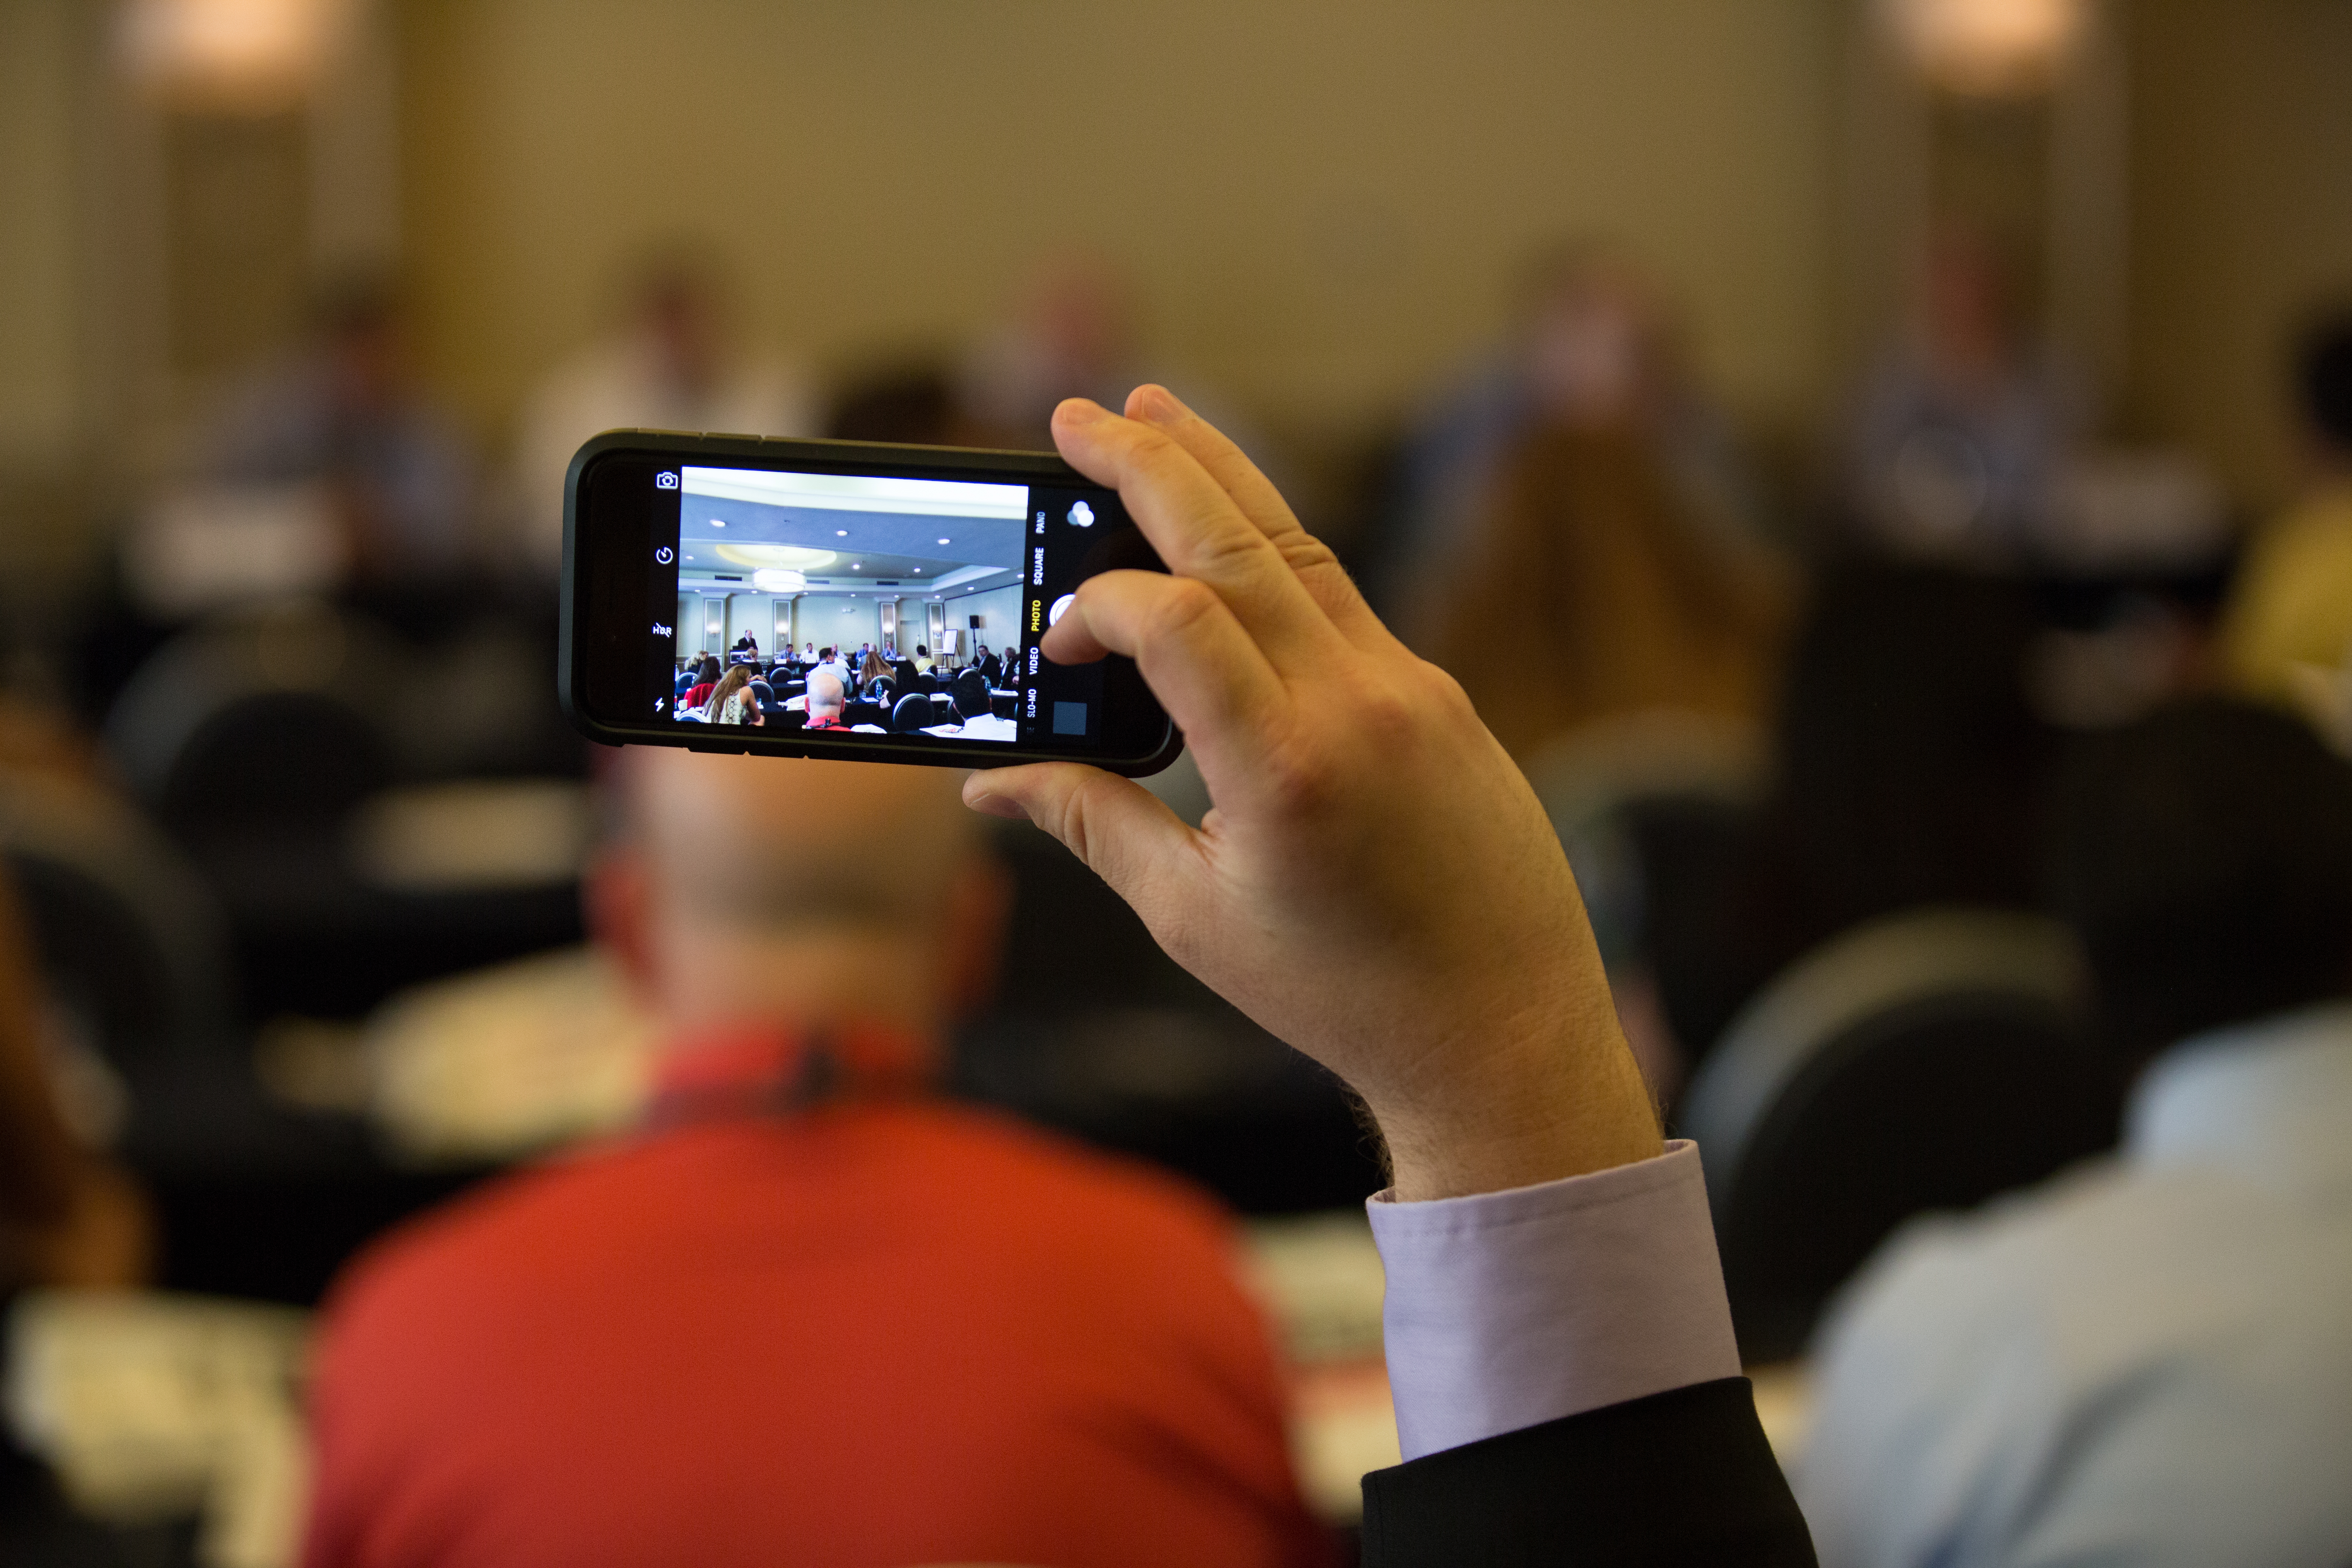 Attendees would often take out their phones to record or take pictures of the panels throughout...